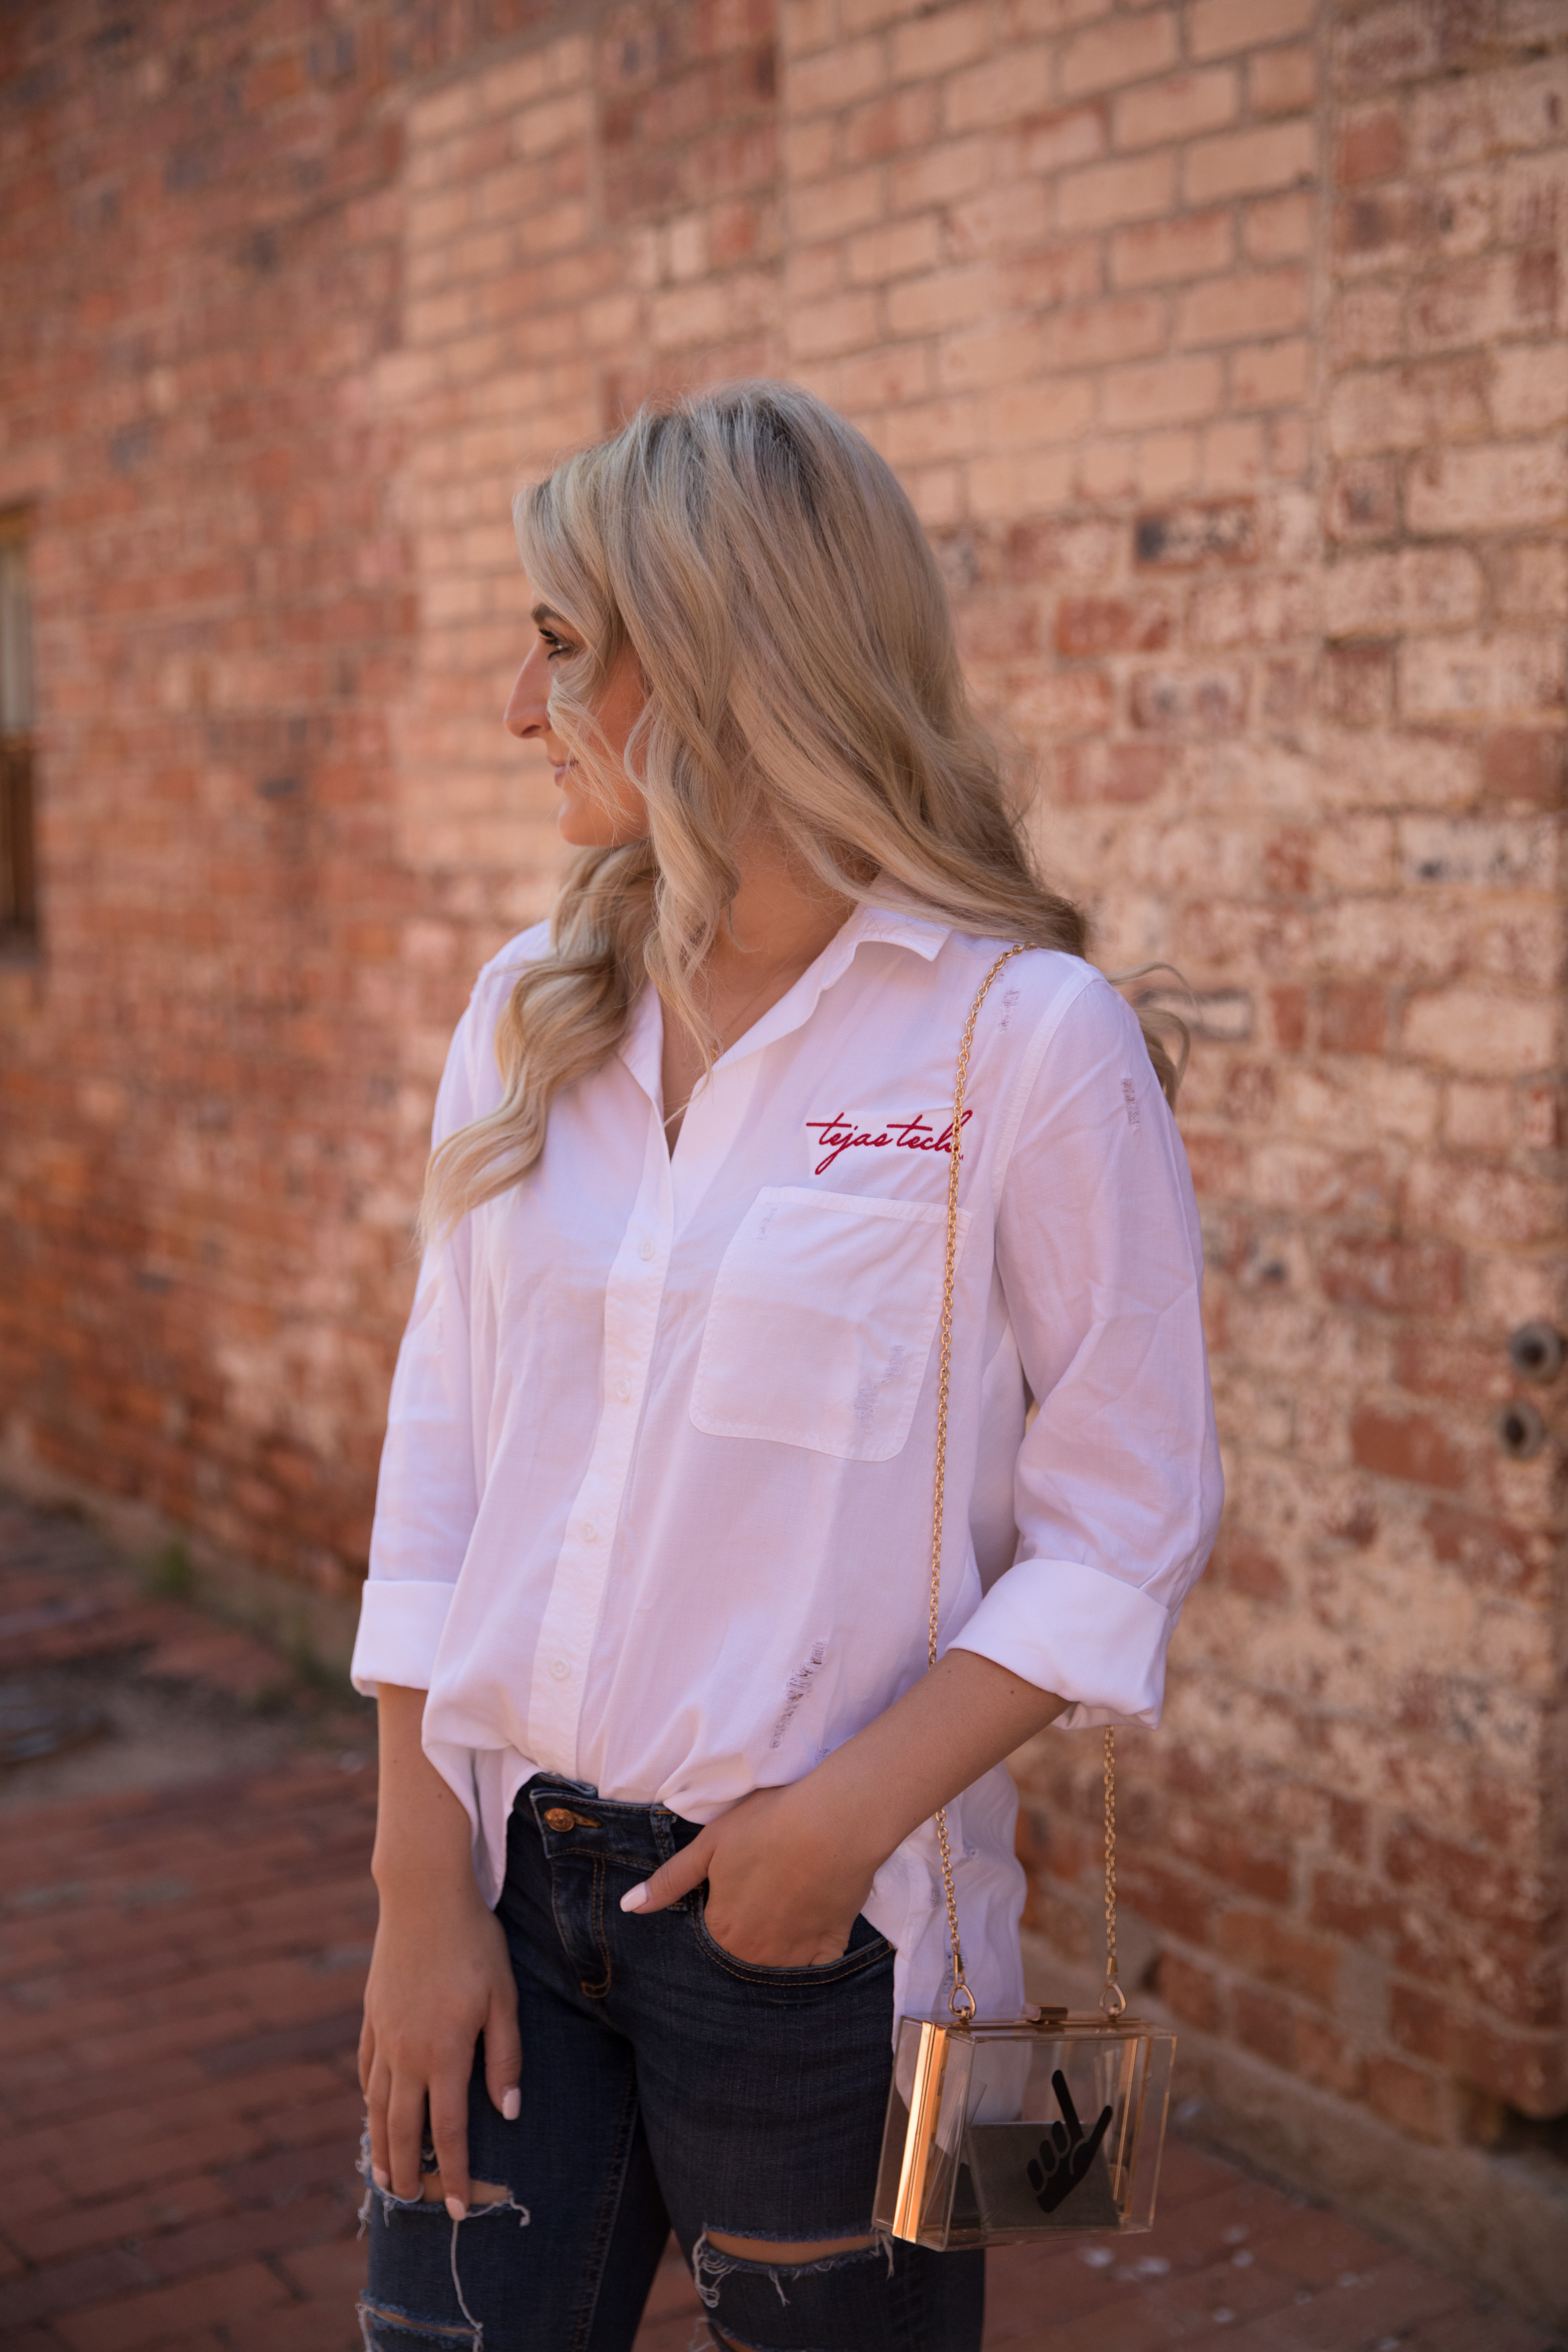 Texas Tech College Game day style | Sideline Swagger | Audrey Madison Stowe a fashion and lifestyle blog